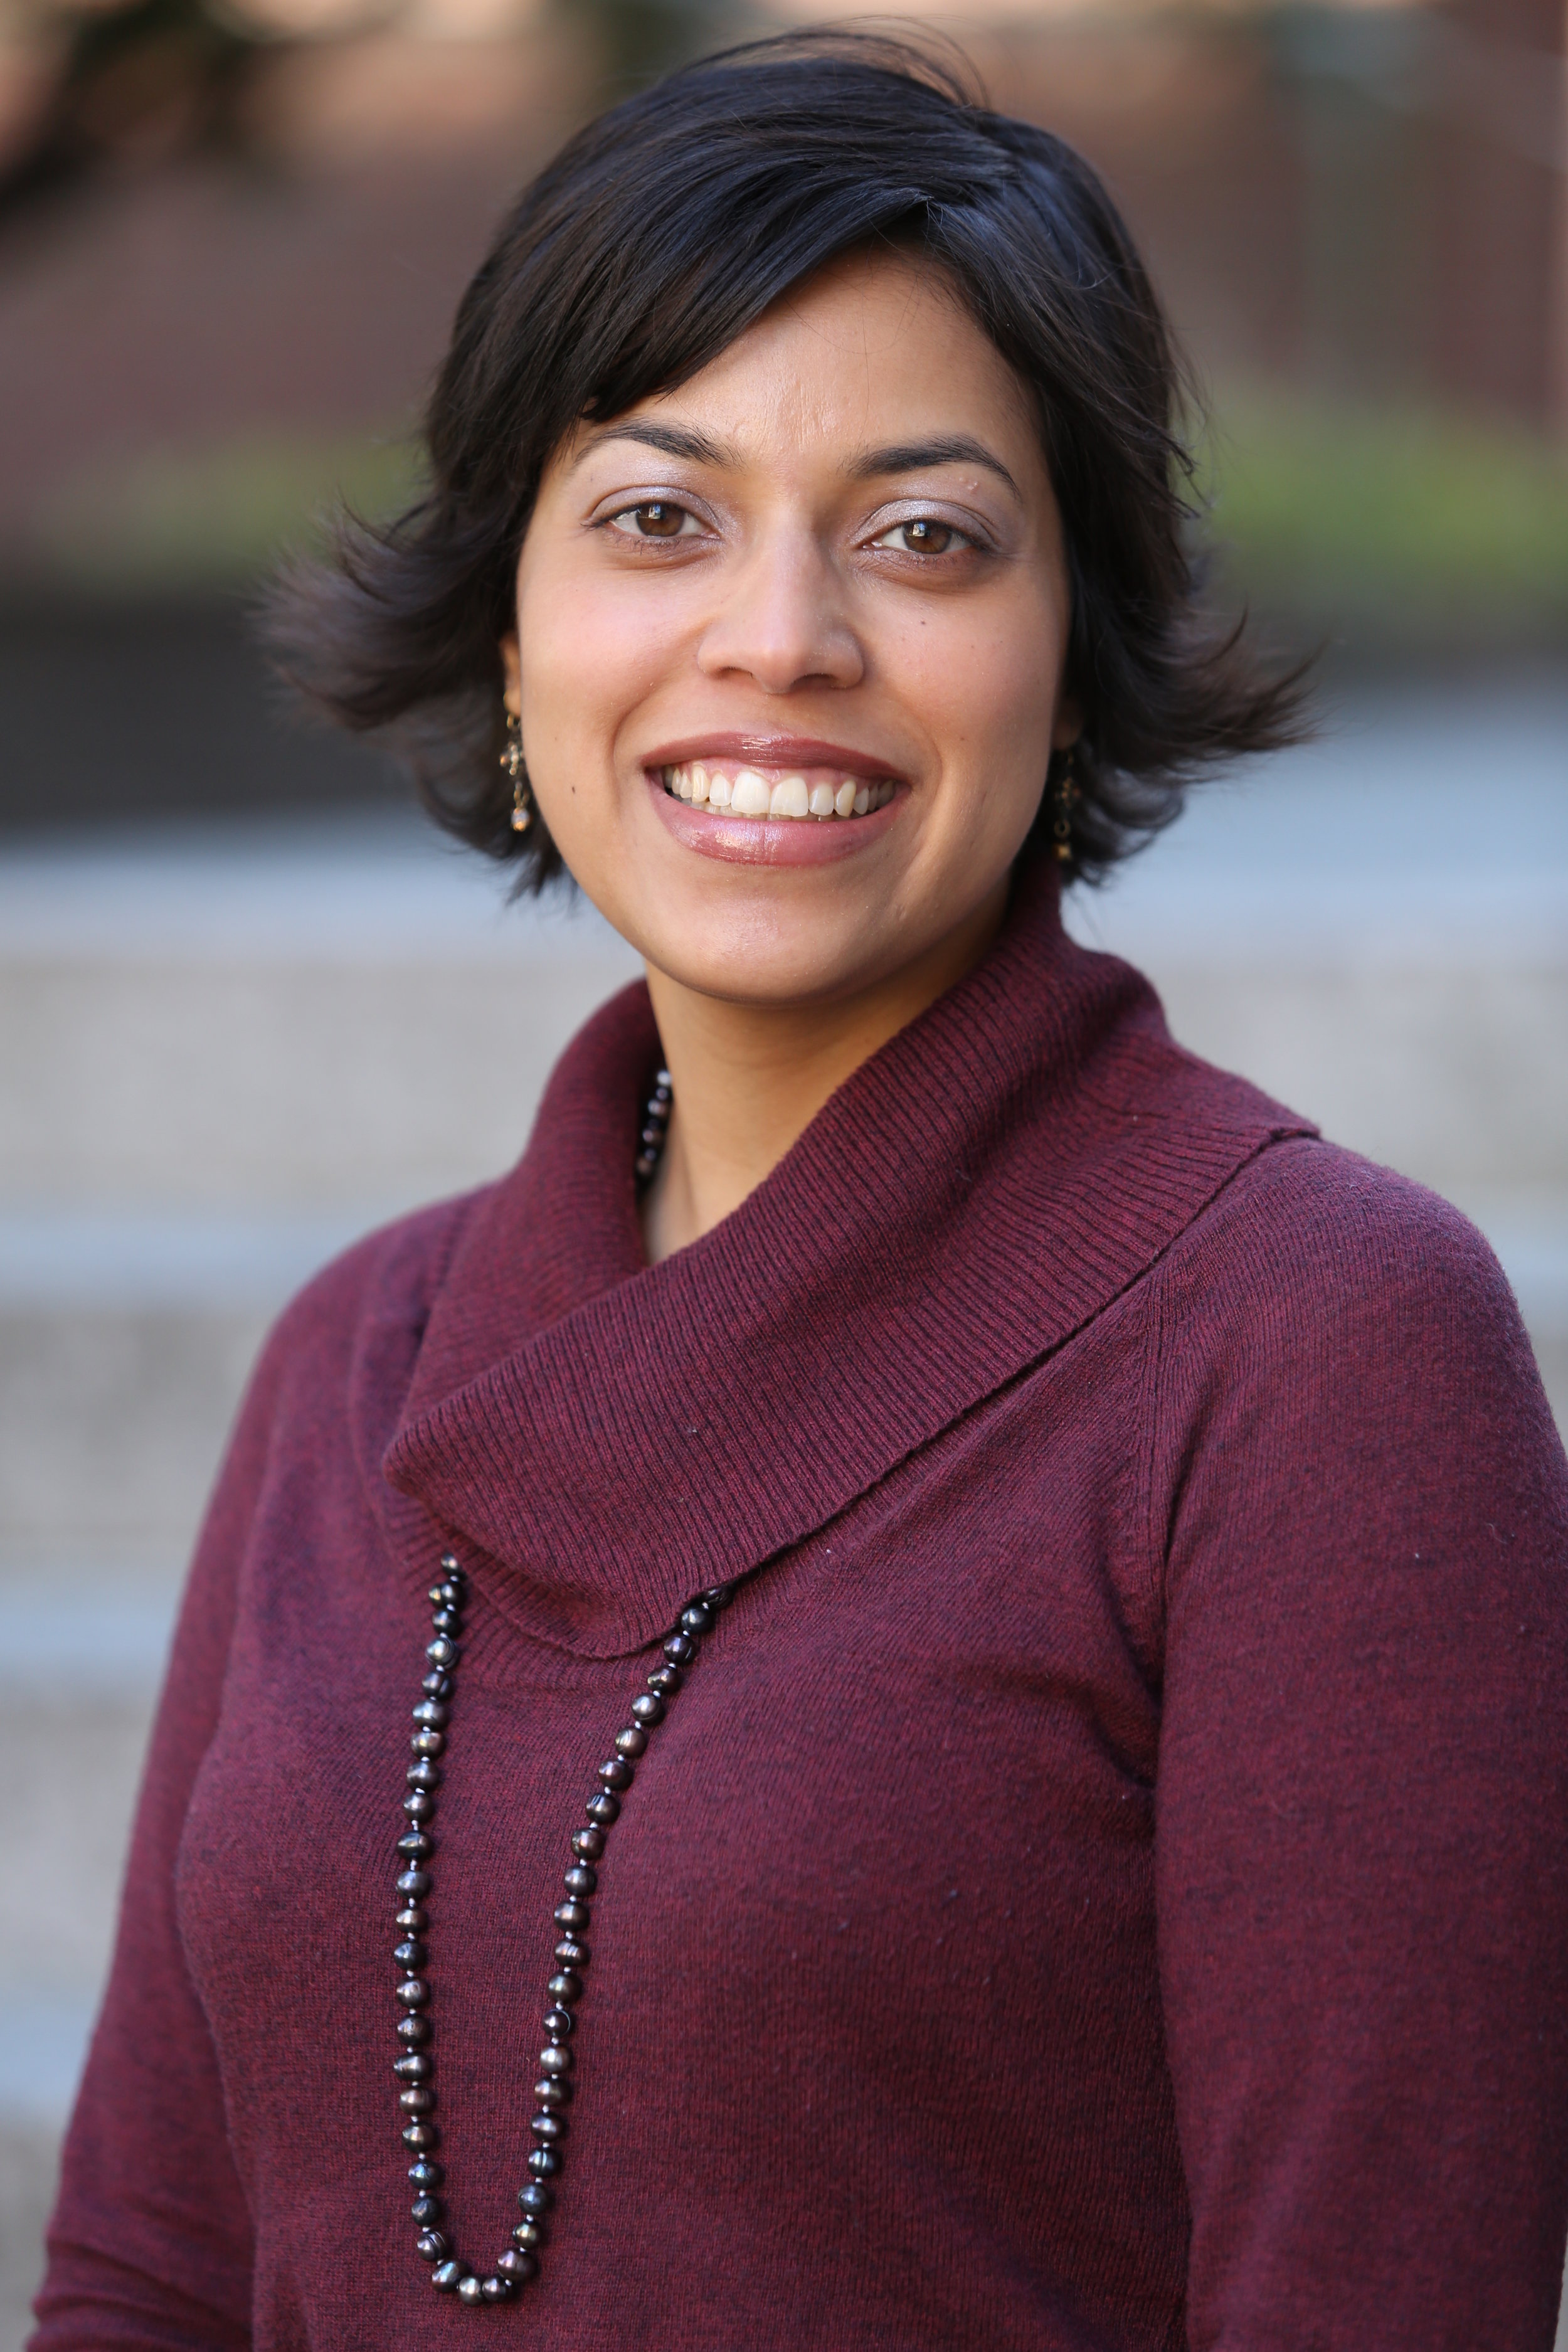 Dr. Vanessa Rodriguez,  author of   The Teaching Brain  and Asst.Professor in the Center for Early Childhood Health and Development in the Dept of Population Health at the NYU School of Medicine